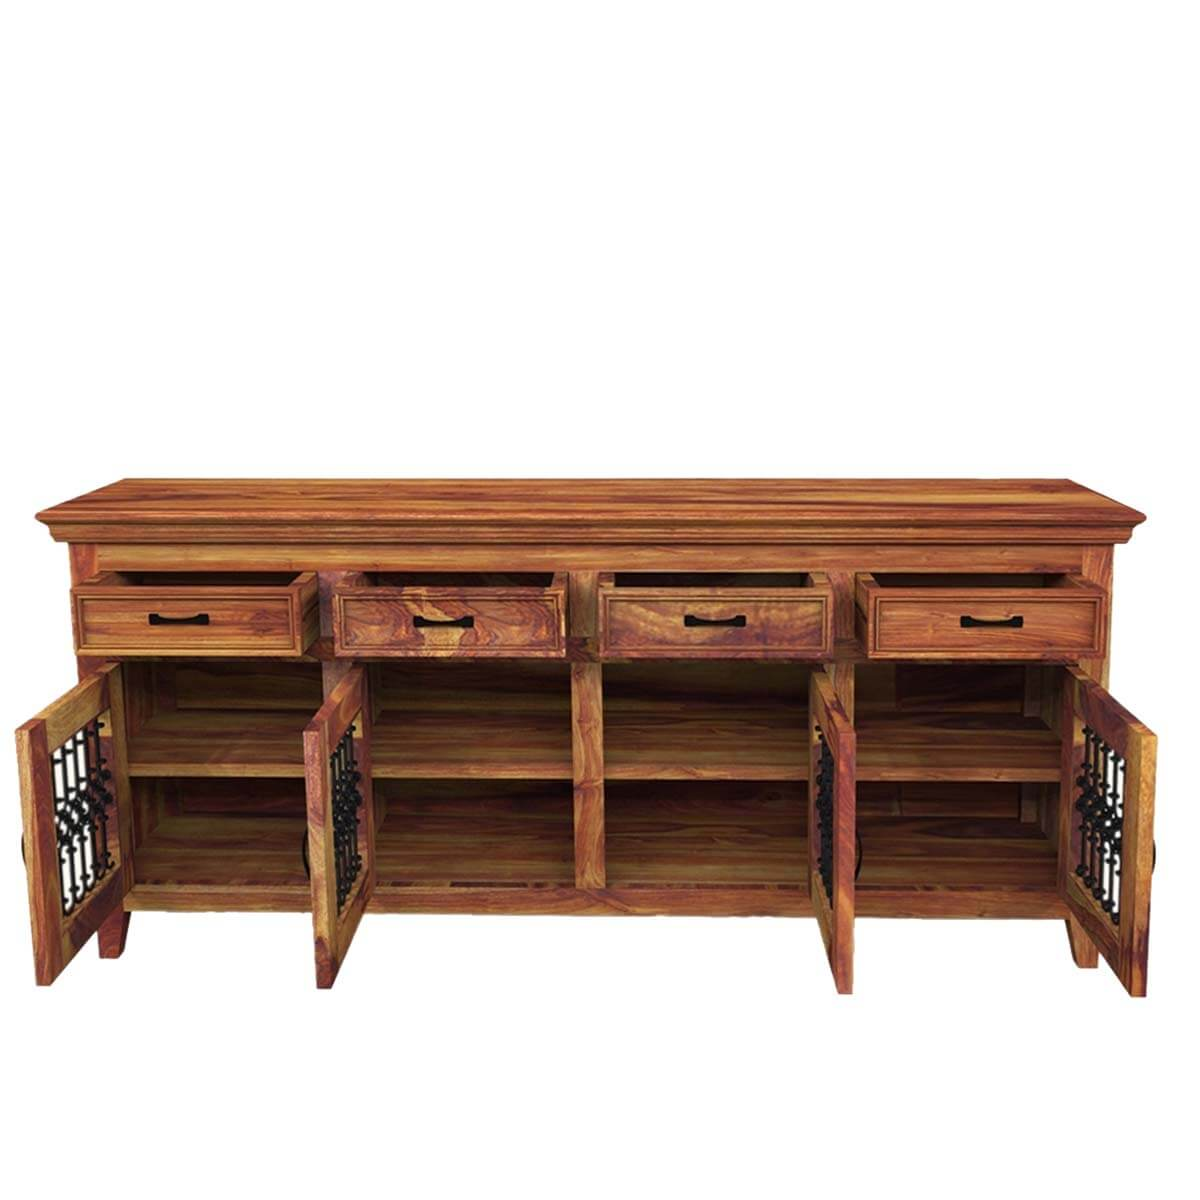 Rustic Buffet Table Setting Solid Wood Large Rustic Dining Room Table Chair Sideboard Set